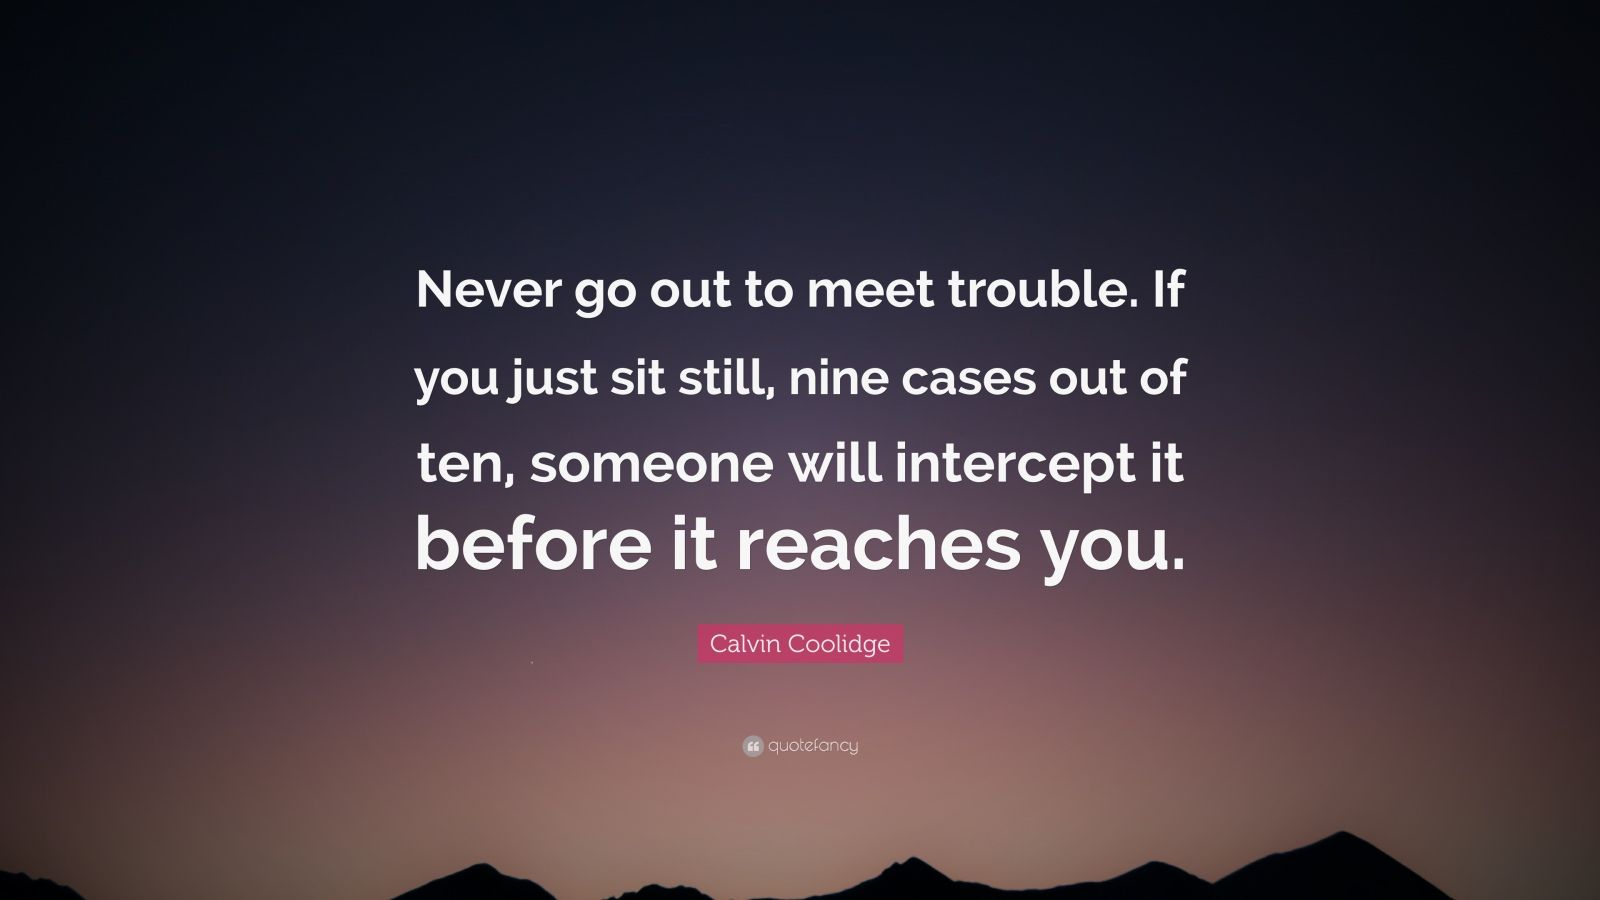 """Calvin Coolidge Quote: """"Never go out to meet trouble. If you just sit still, nine cases out of ten, someone will intercept it before it reaches you."""""""